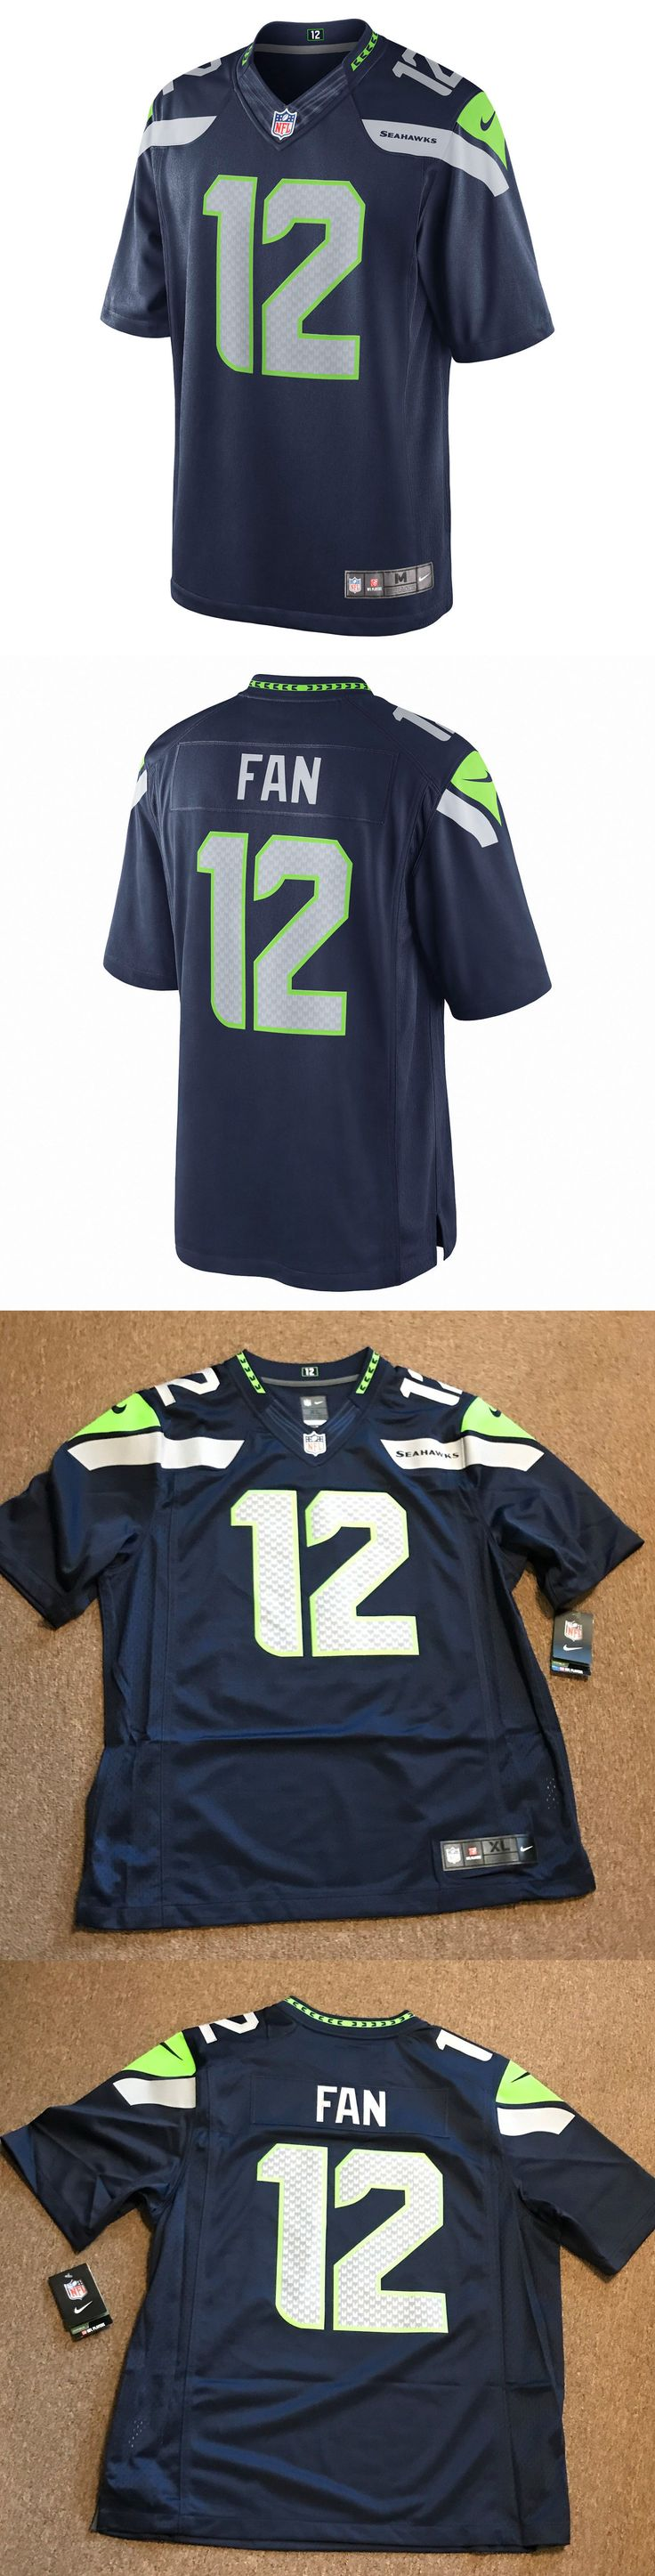 Football-NFL 206: Nike Nfl Seattle Seahawks Limited Jersey Mens Stitched #12 Blue 12Th Man Fan -> BUY IT NOW ONLY: $55.09 on eBay!